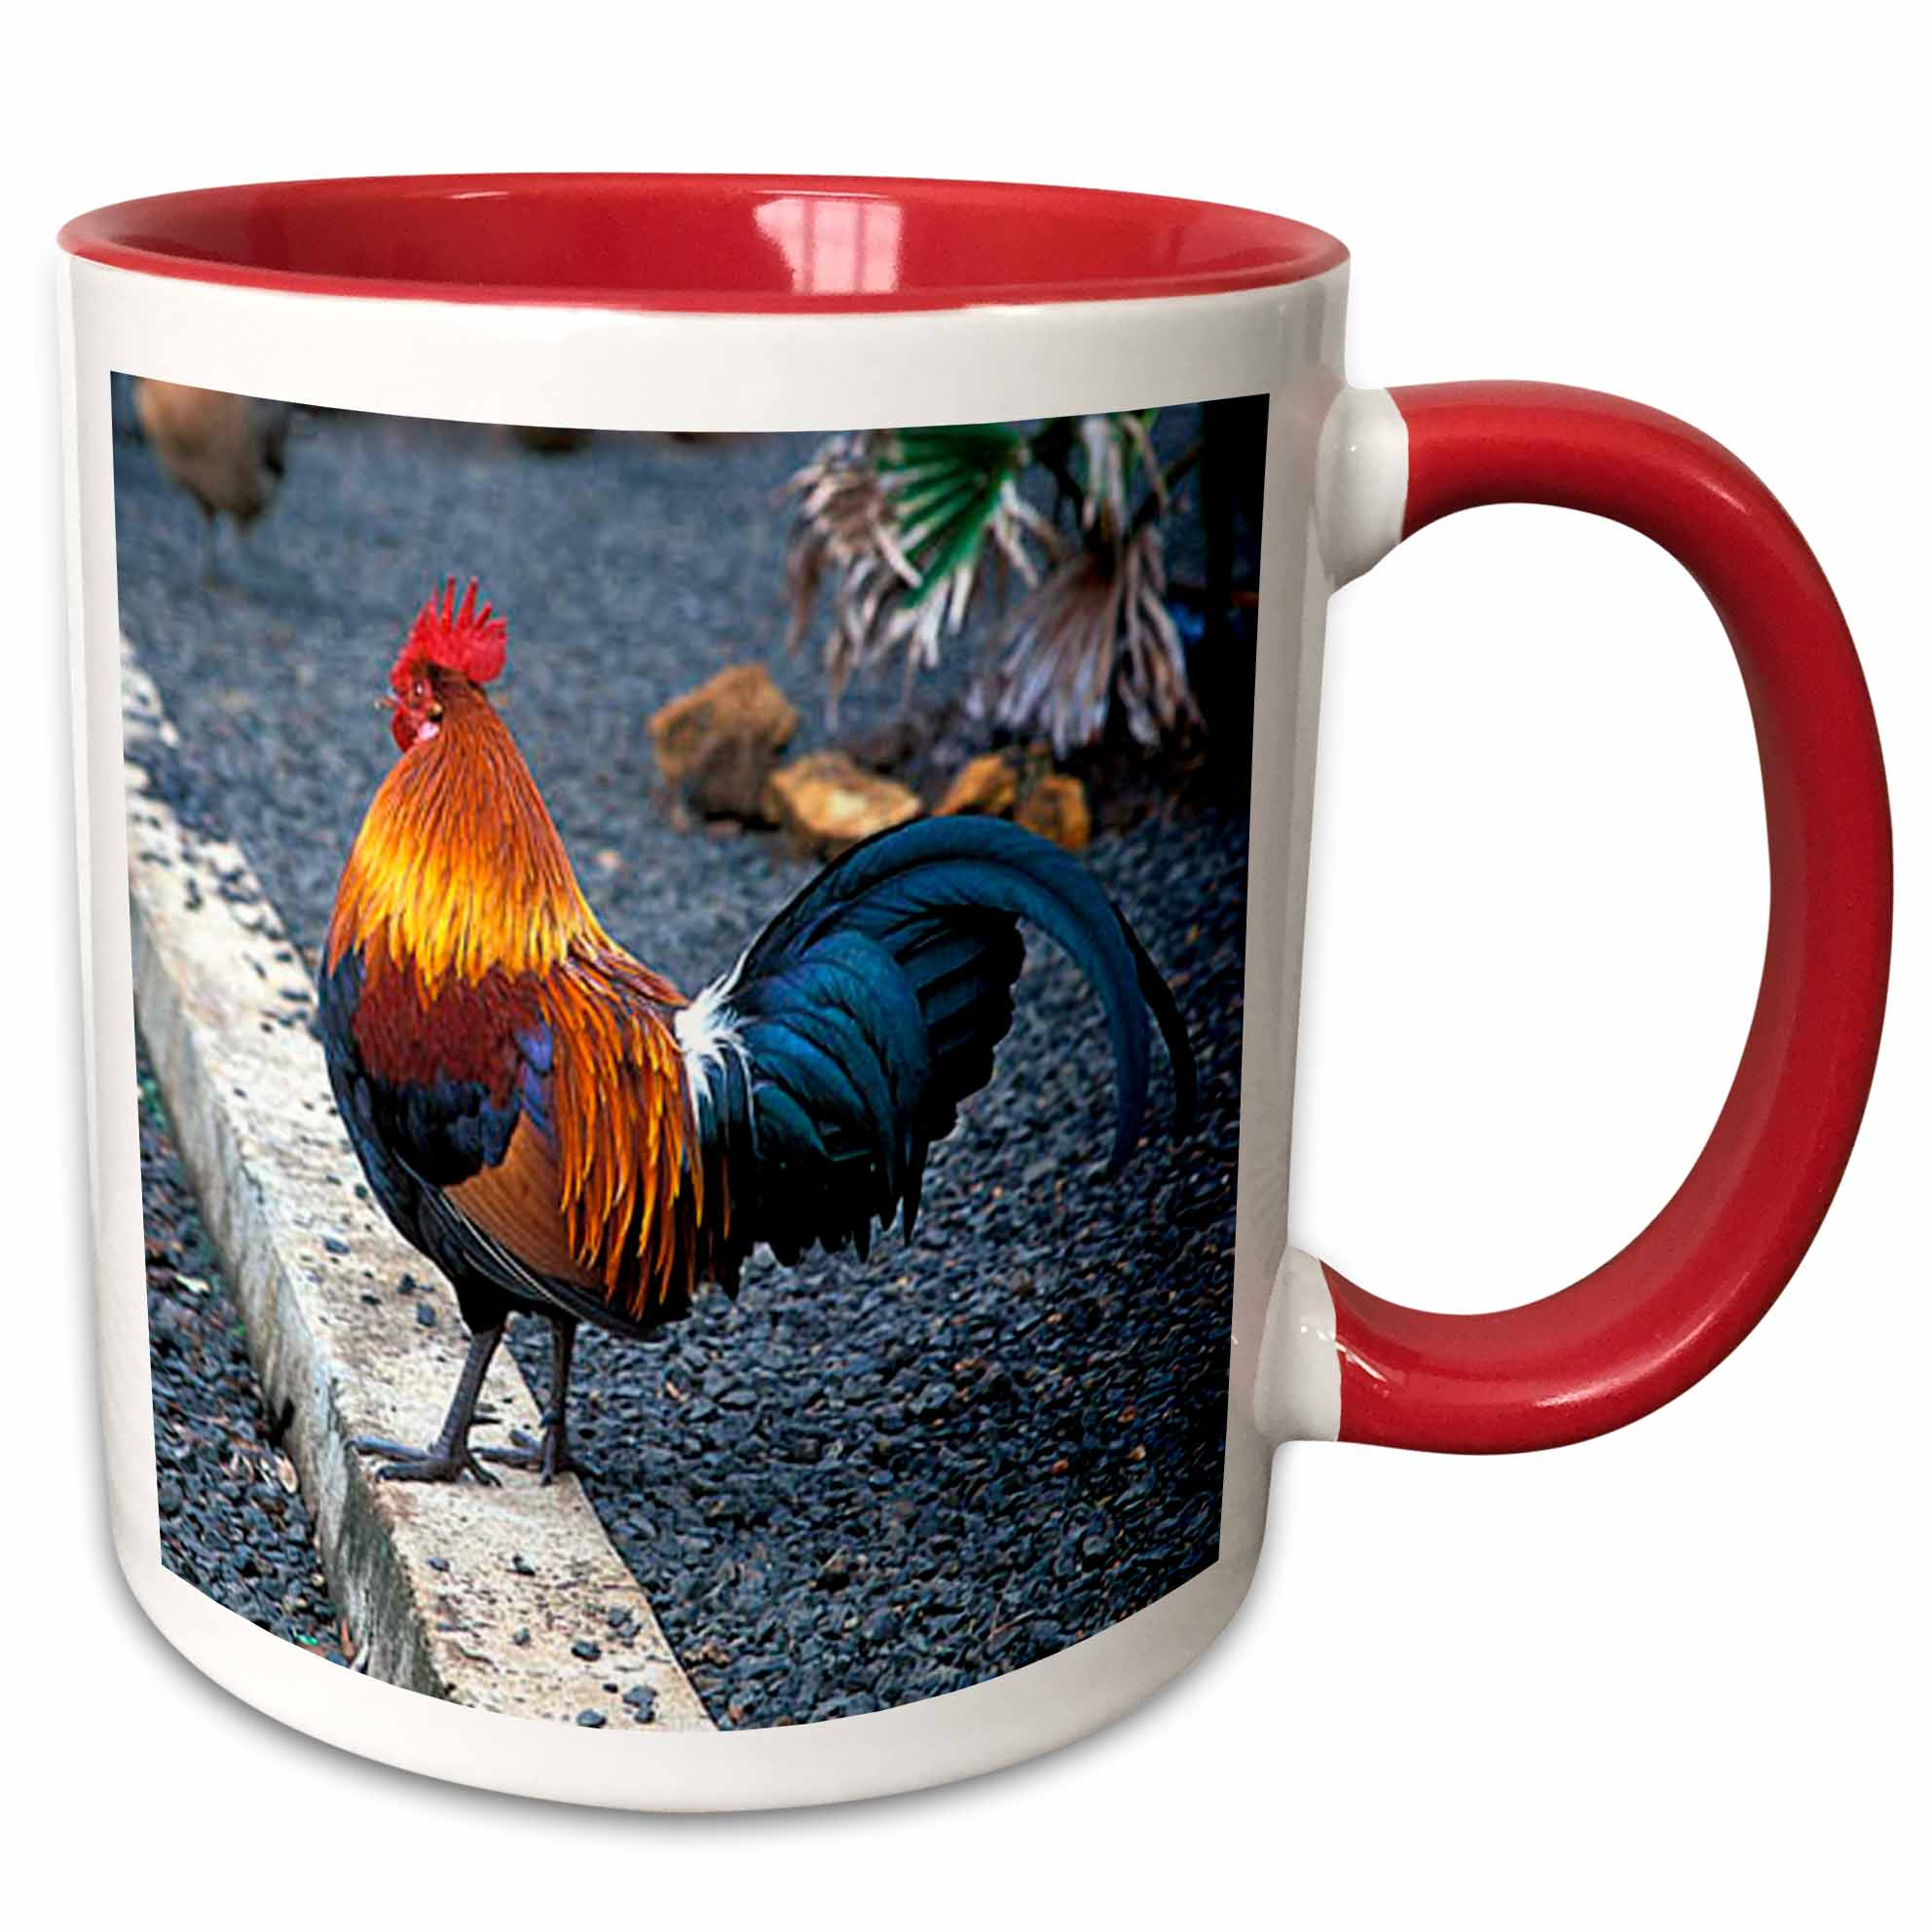 3dRose Rooster - Two Tone Red Mug, 11-ounce